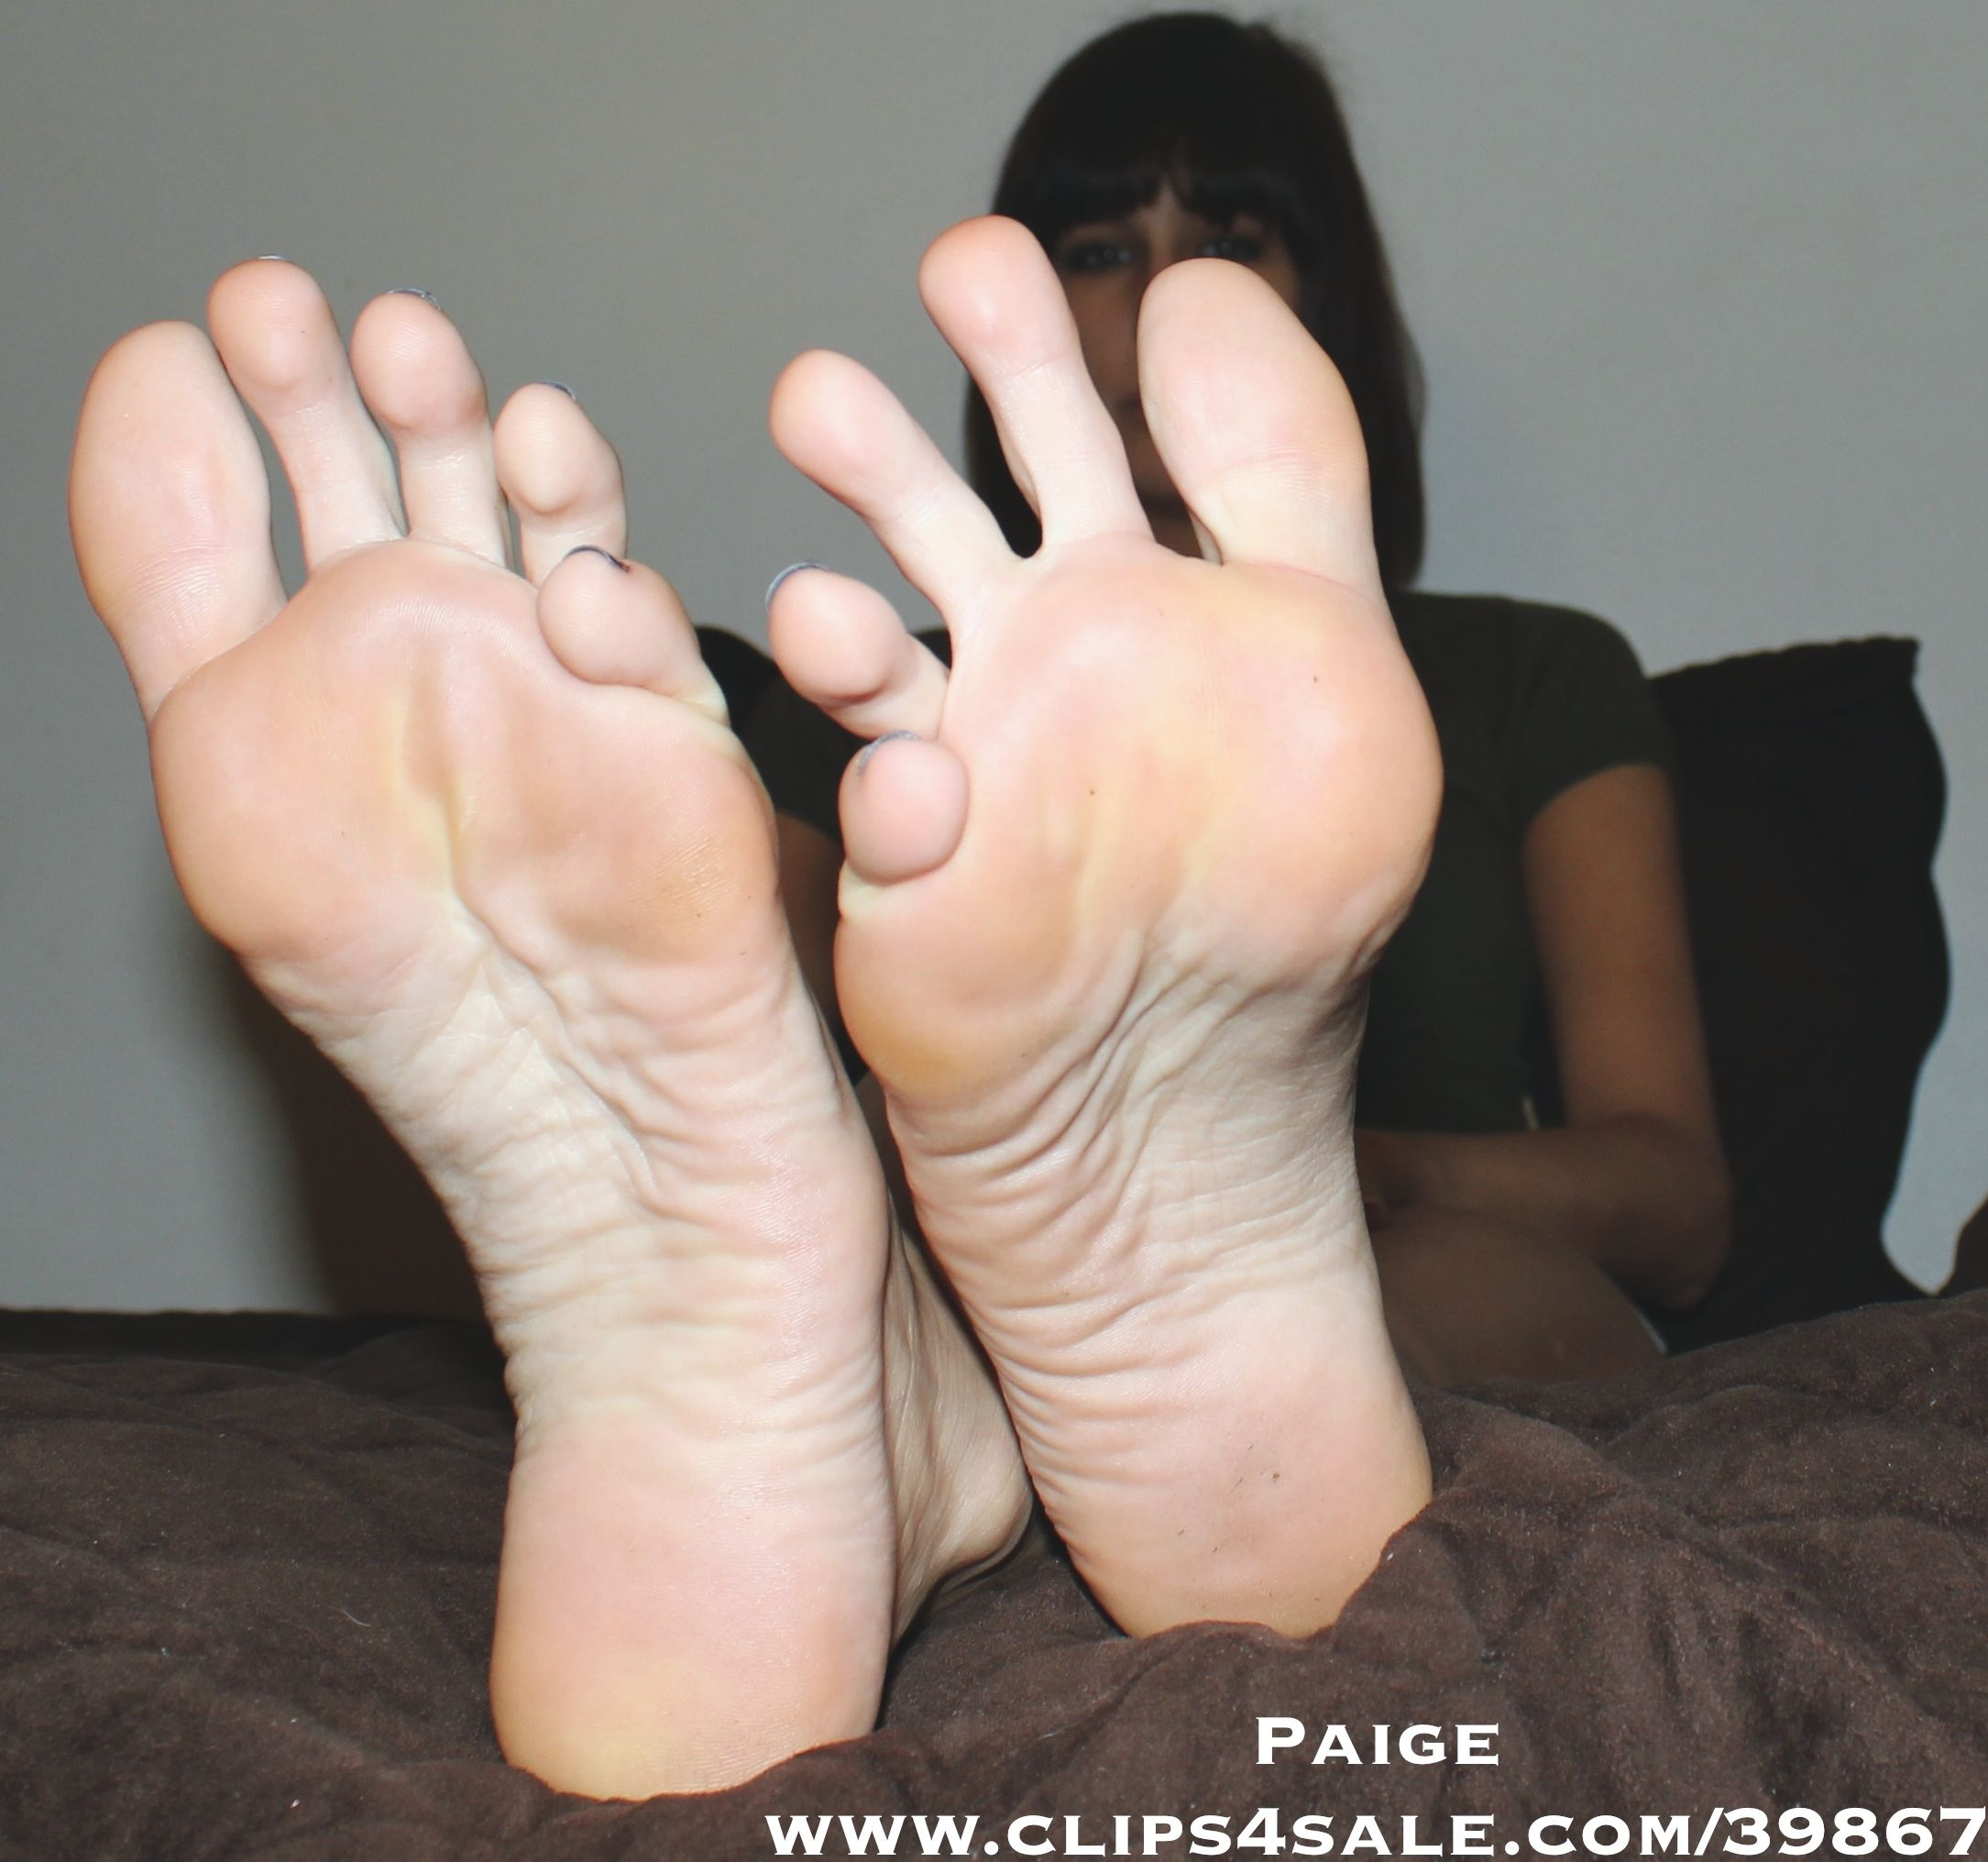 Pin On Female Feet And Toes